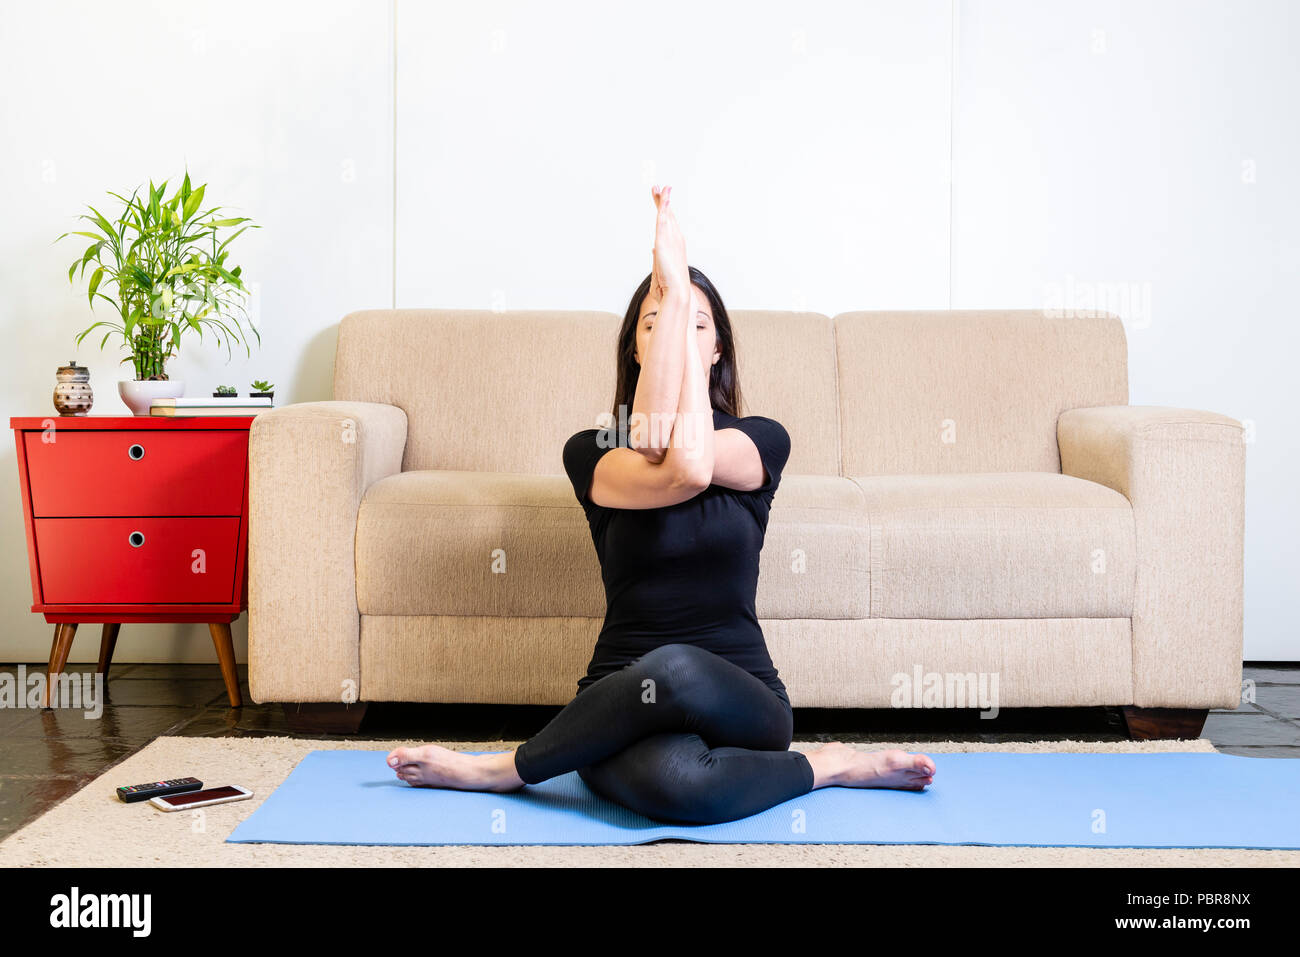 Beautiful caucasian brunette woman in black clothes on blue yogamat doing a variation of the eagle pose - Stock Image